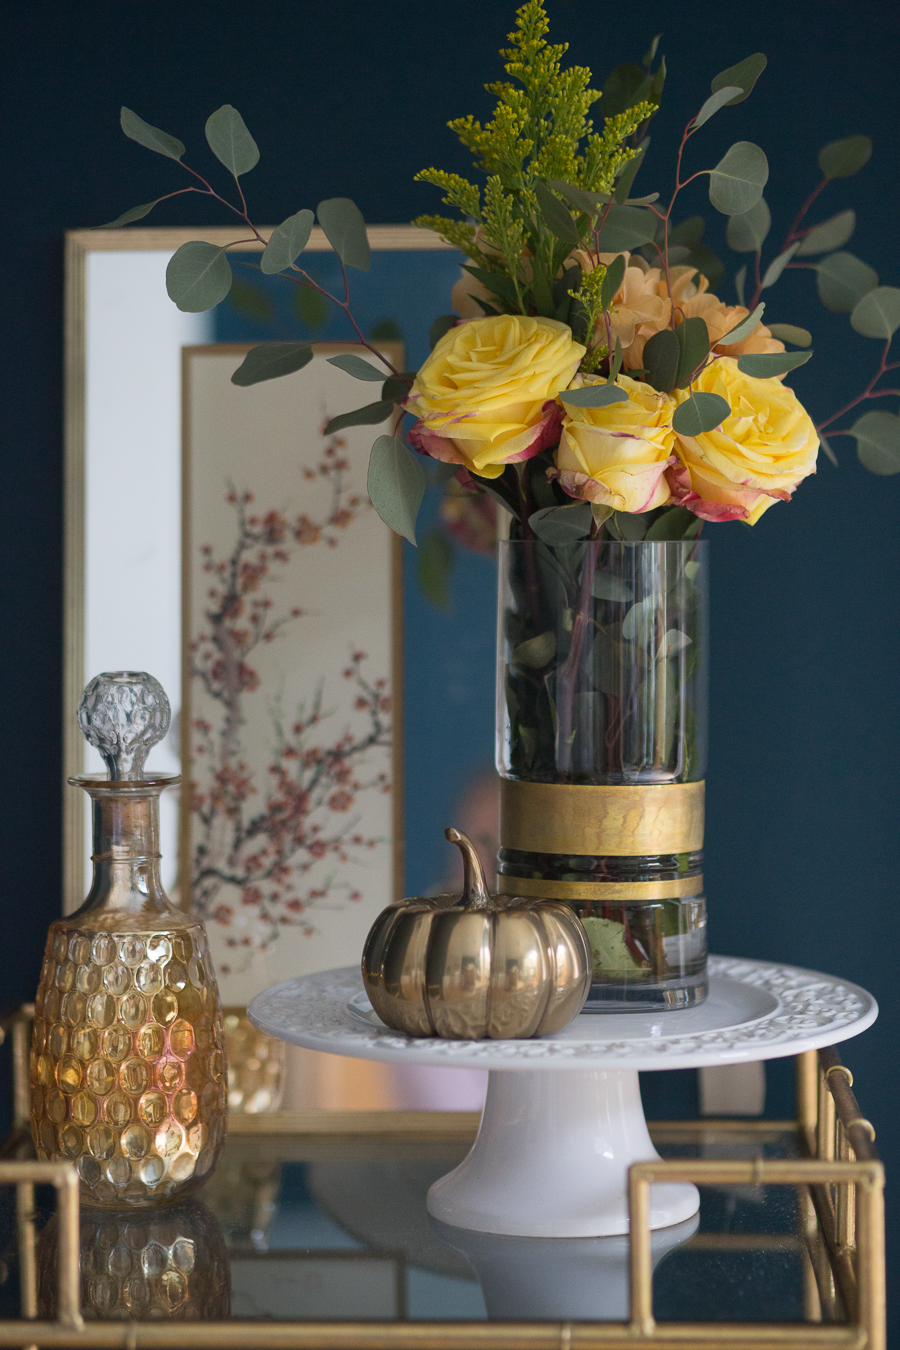 Loveliest Looks of Fall Home Tour Beautiful Fall Home Decor and Fall Fashion Ideas fall bar cart styling gold bar cart in a dark green dining room with a white cake plate and a gold pumpkin sitting on top of it with a clear glass vase with gold detailing around the bottom full of fall colored roses and flowers